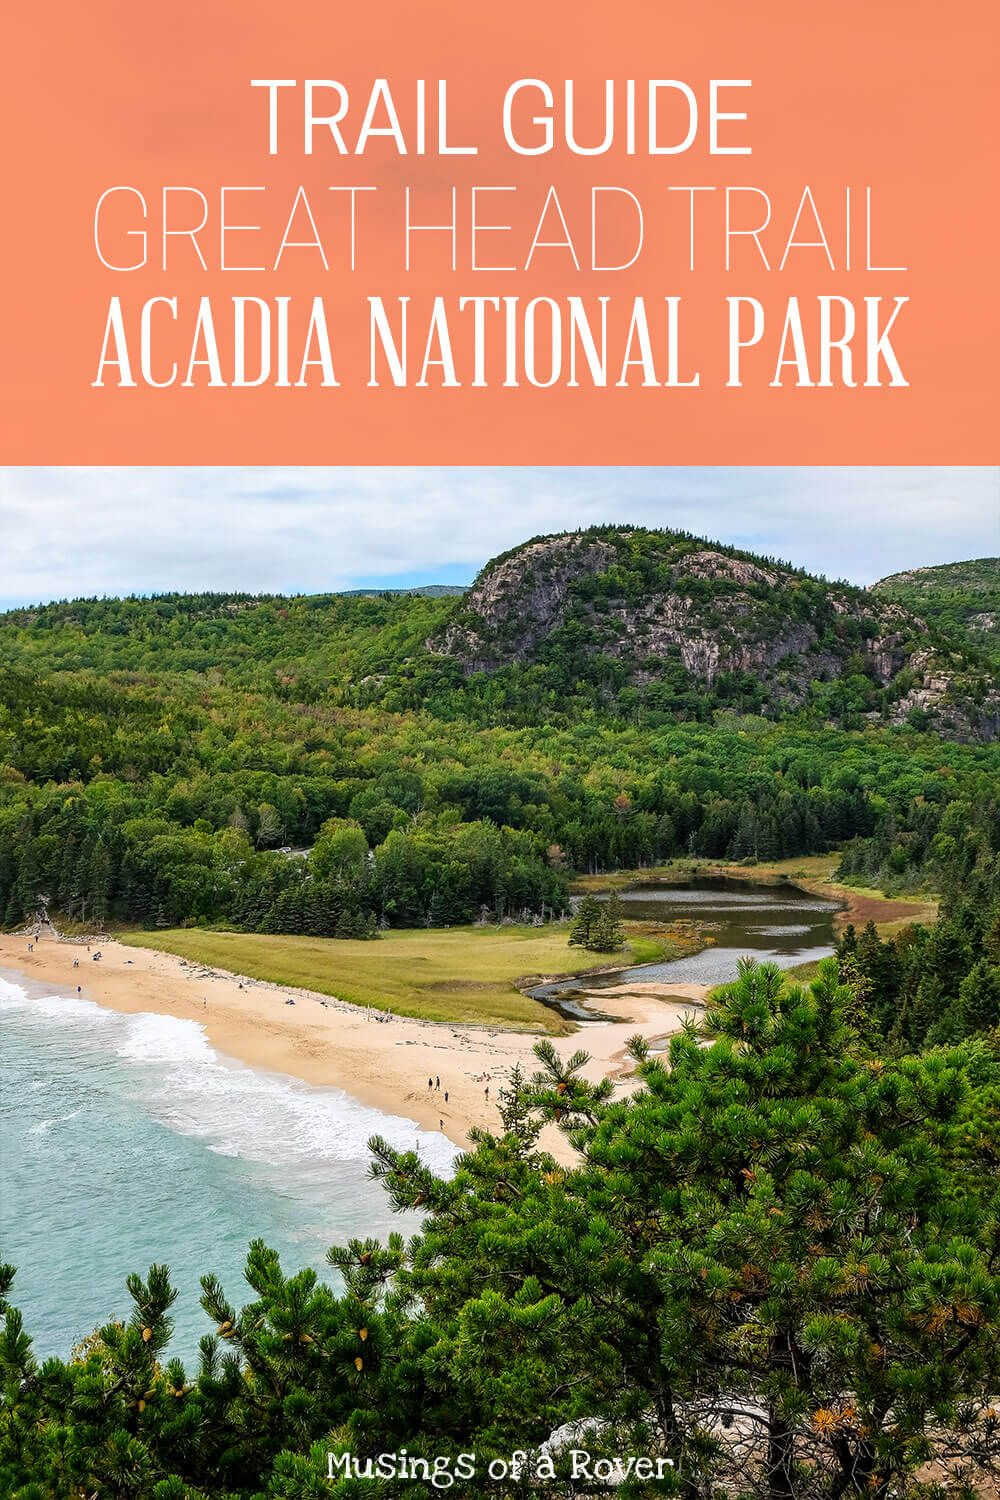 Interested in an easy hike with incredible coastal views? Check out the Great Head Hike near Sand Beach in Acadia National Park. It's fairly level with only one truly steep section. Find out all you need to know in my trail guide! bar harbor, acadia national park, things to do acadia national park, things to do bar harbor, maine, maine travel, maine things to do